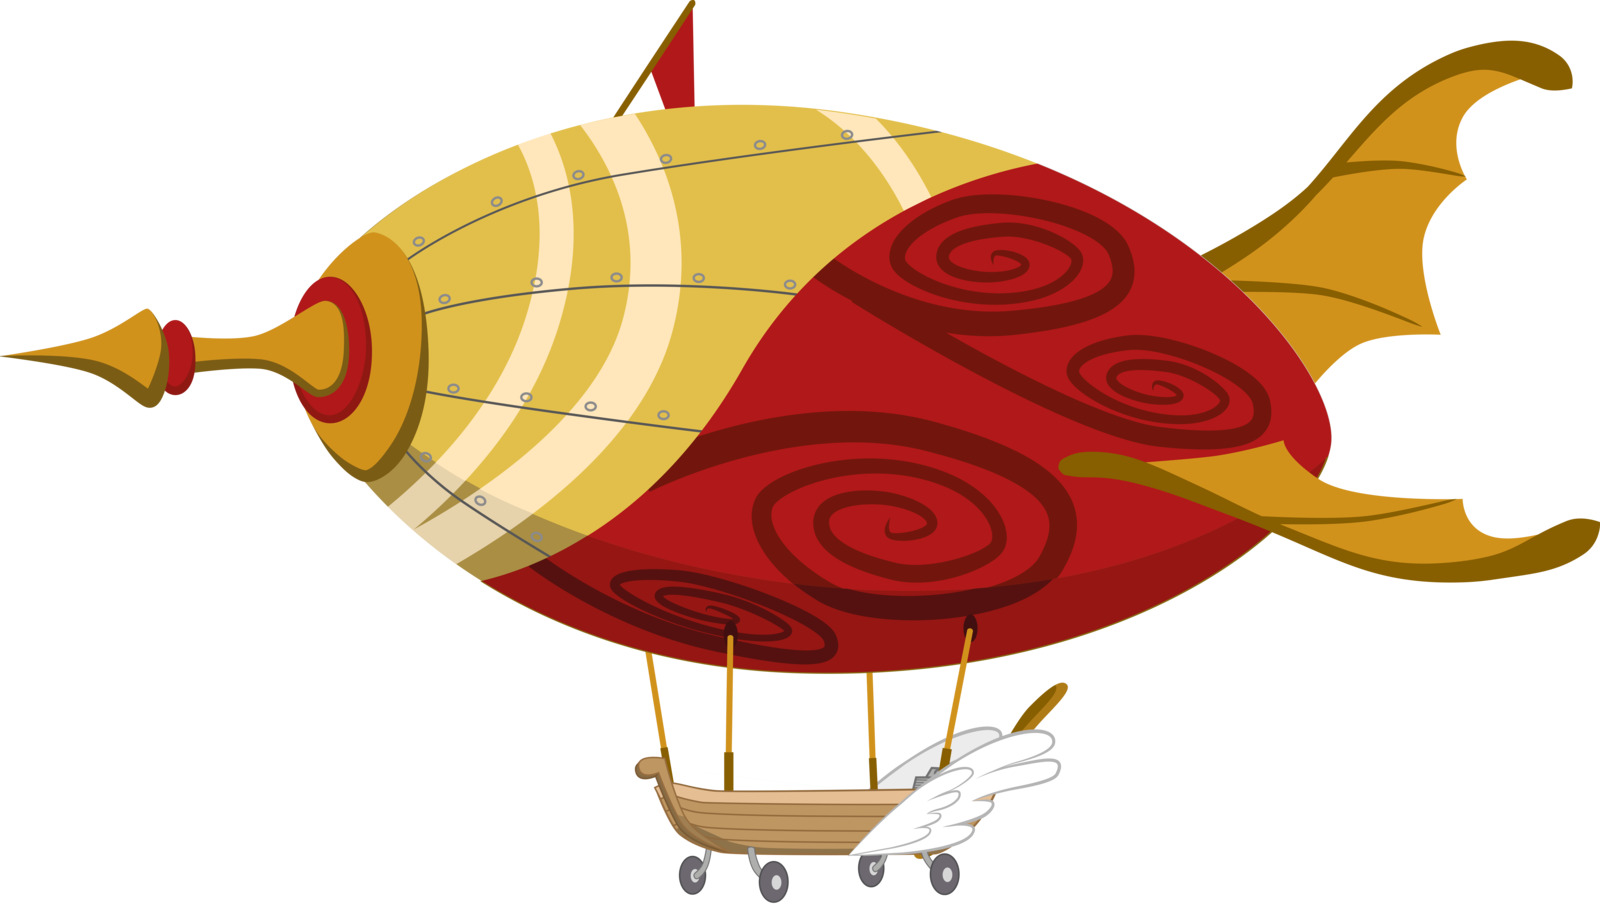 Airship drawing fire. Vector google search svg